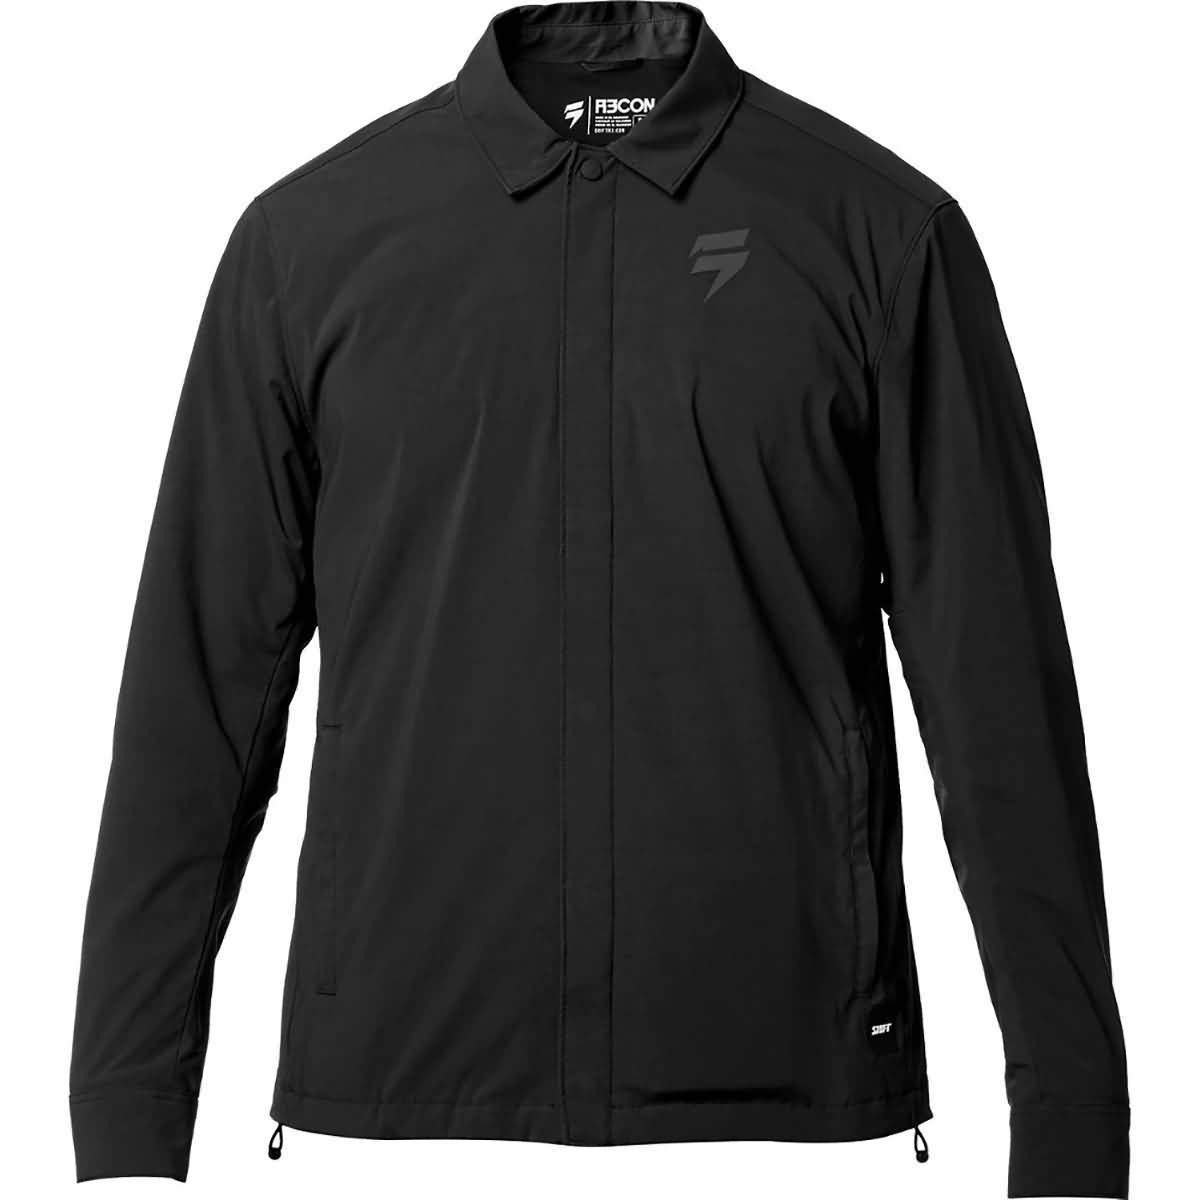 Shift Racing Recon Coaches Men's Jackets-24140